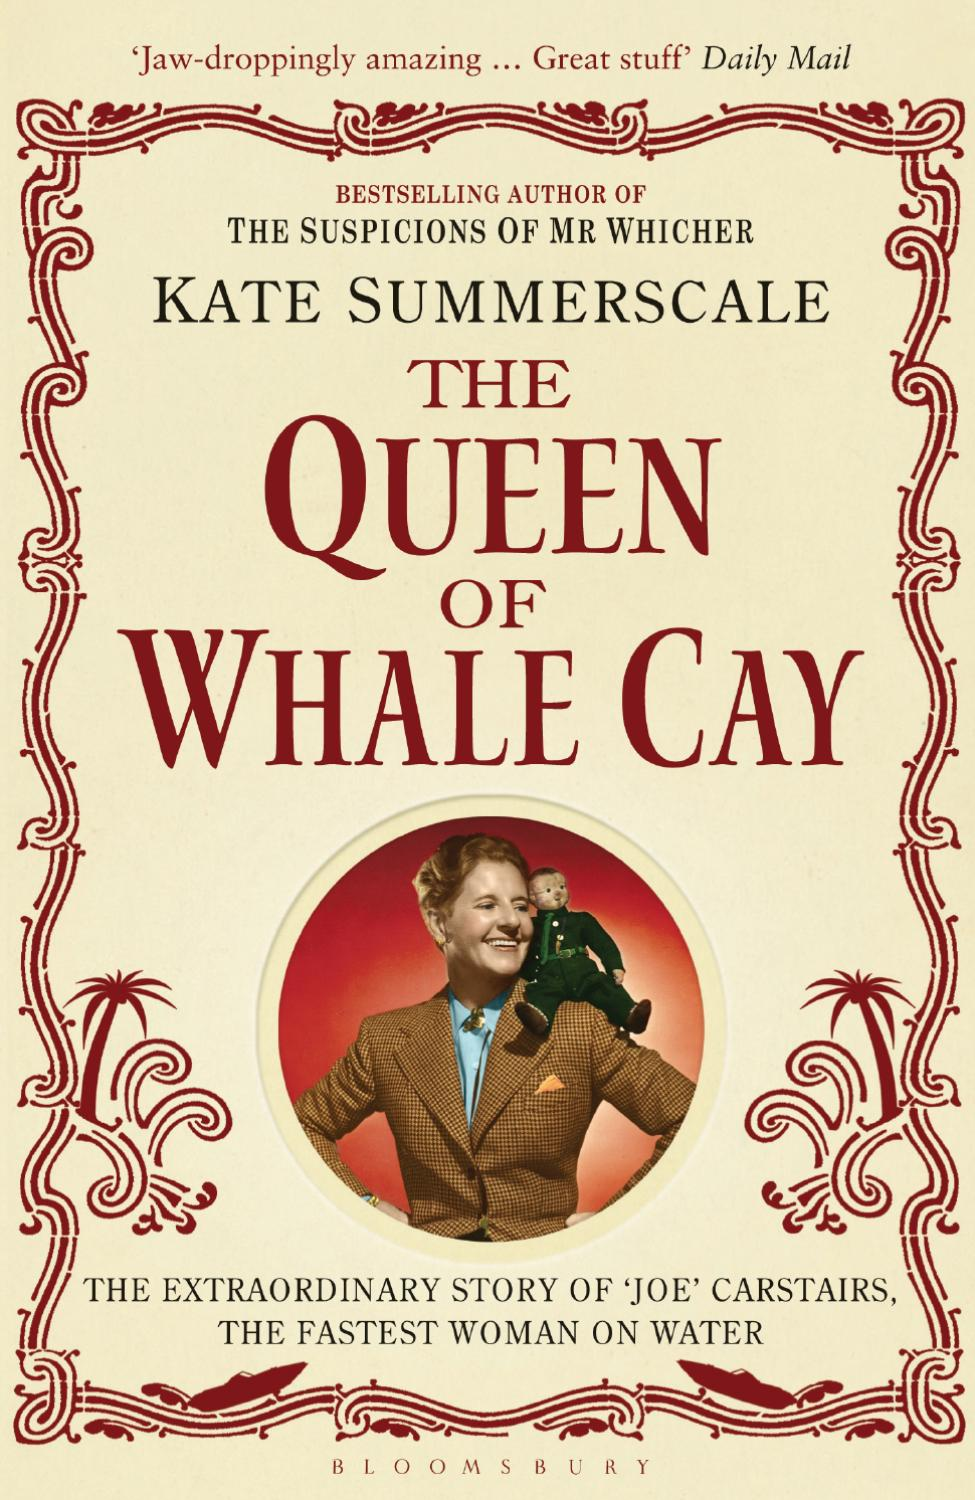 Queen of Whale Cay